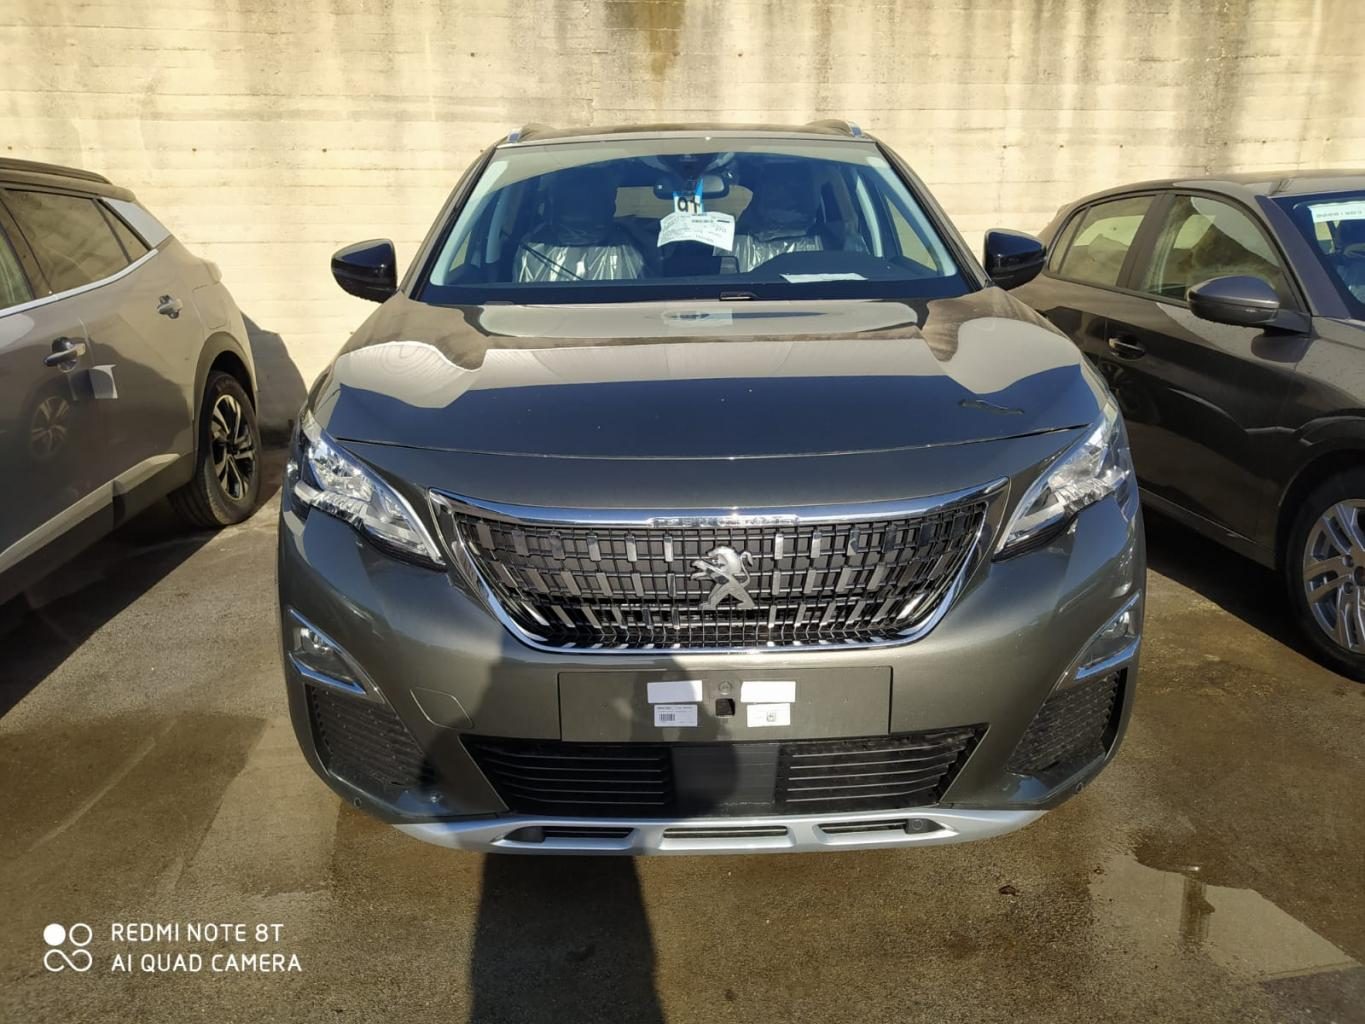 PEUGEOT 5008 BLUEHDI 130 EAT8 S&ampS-ALLURE